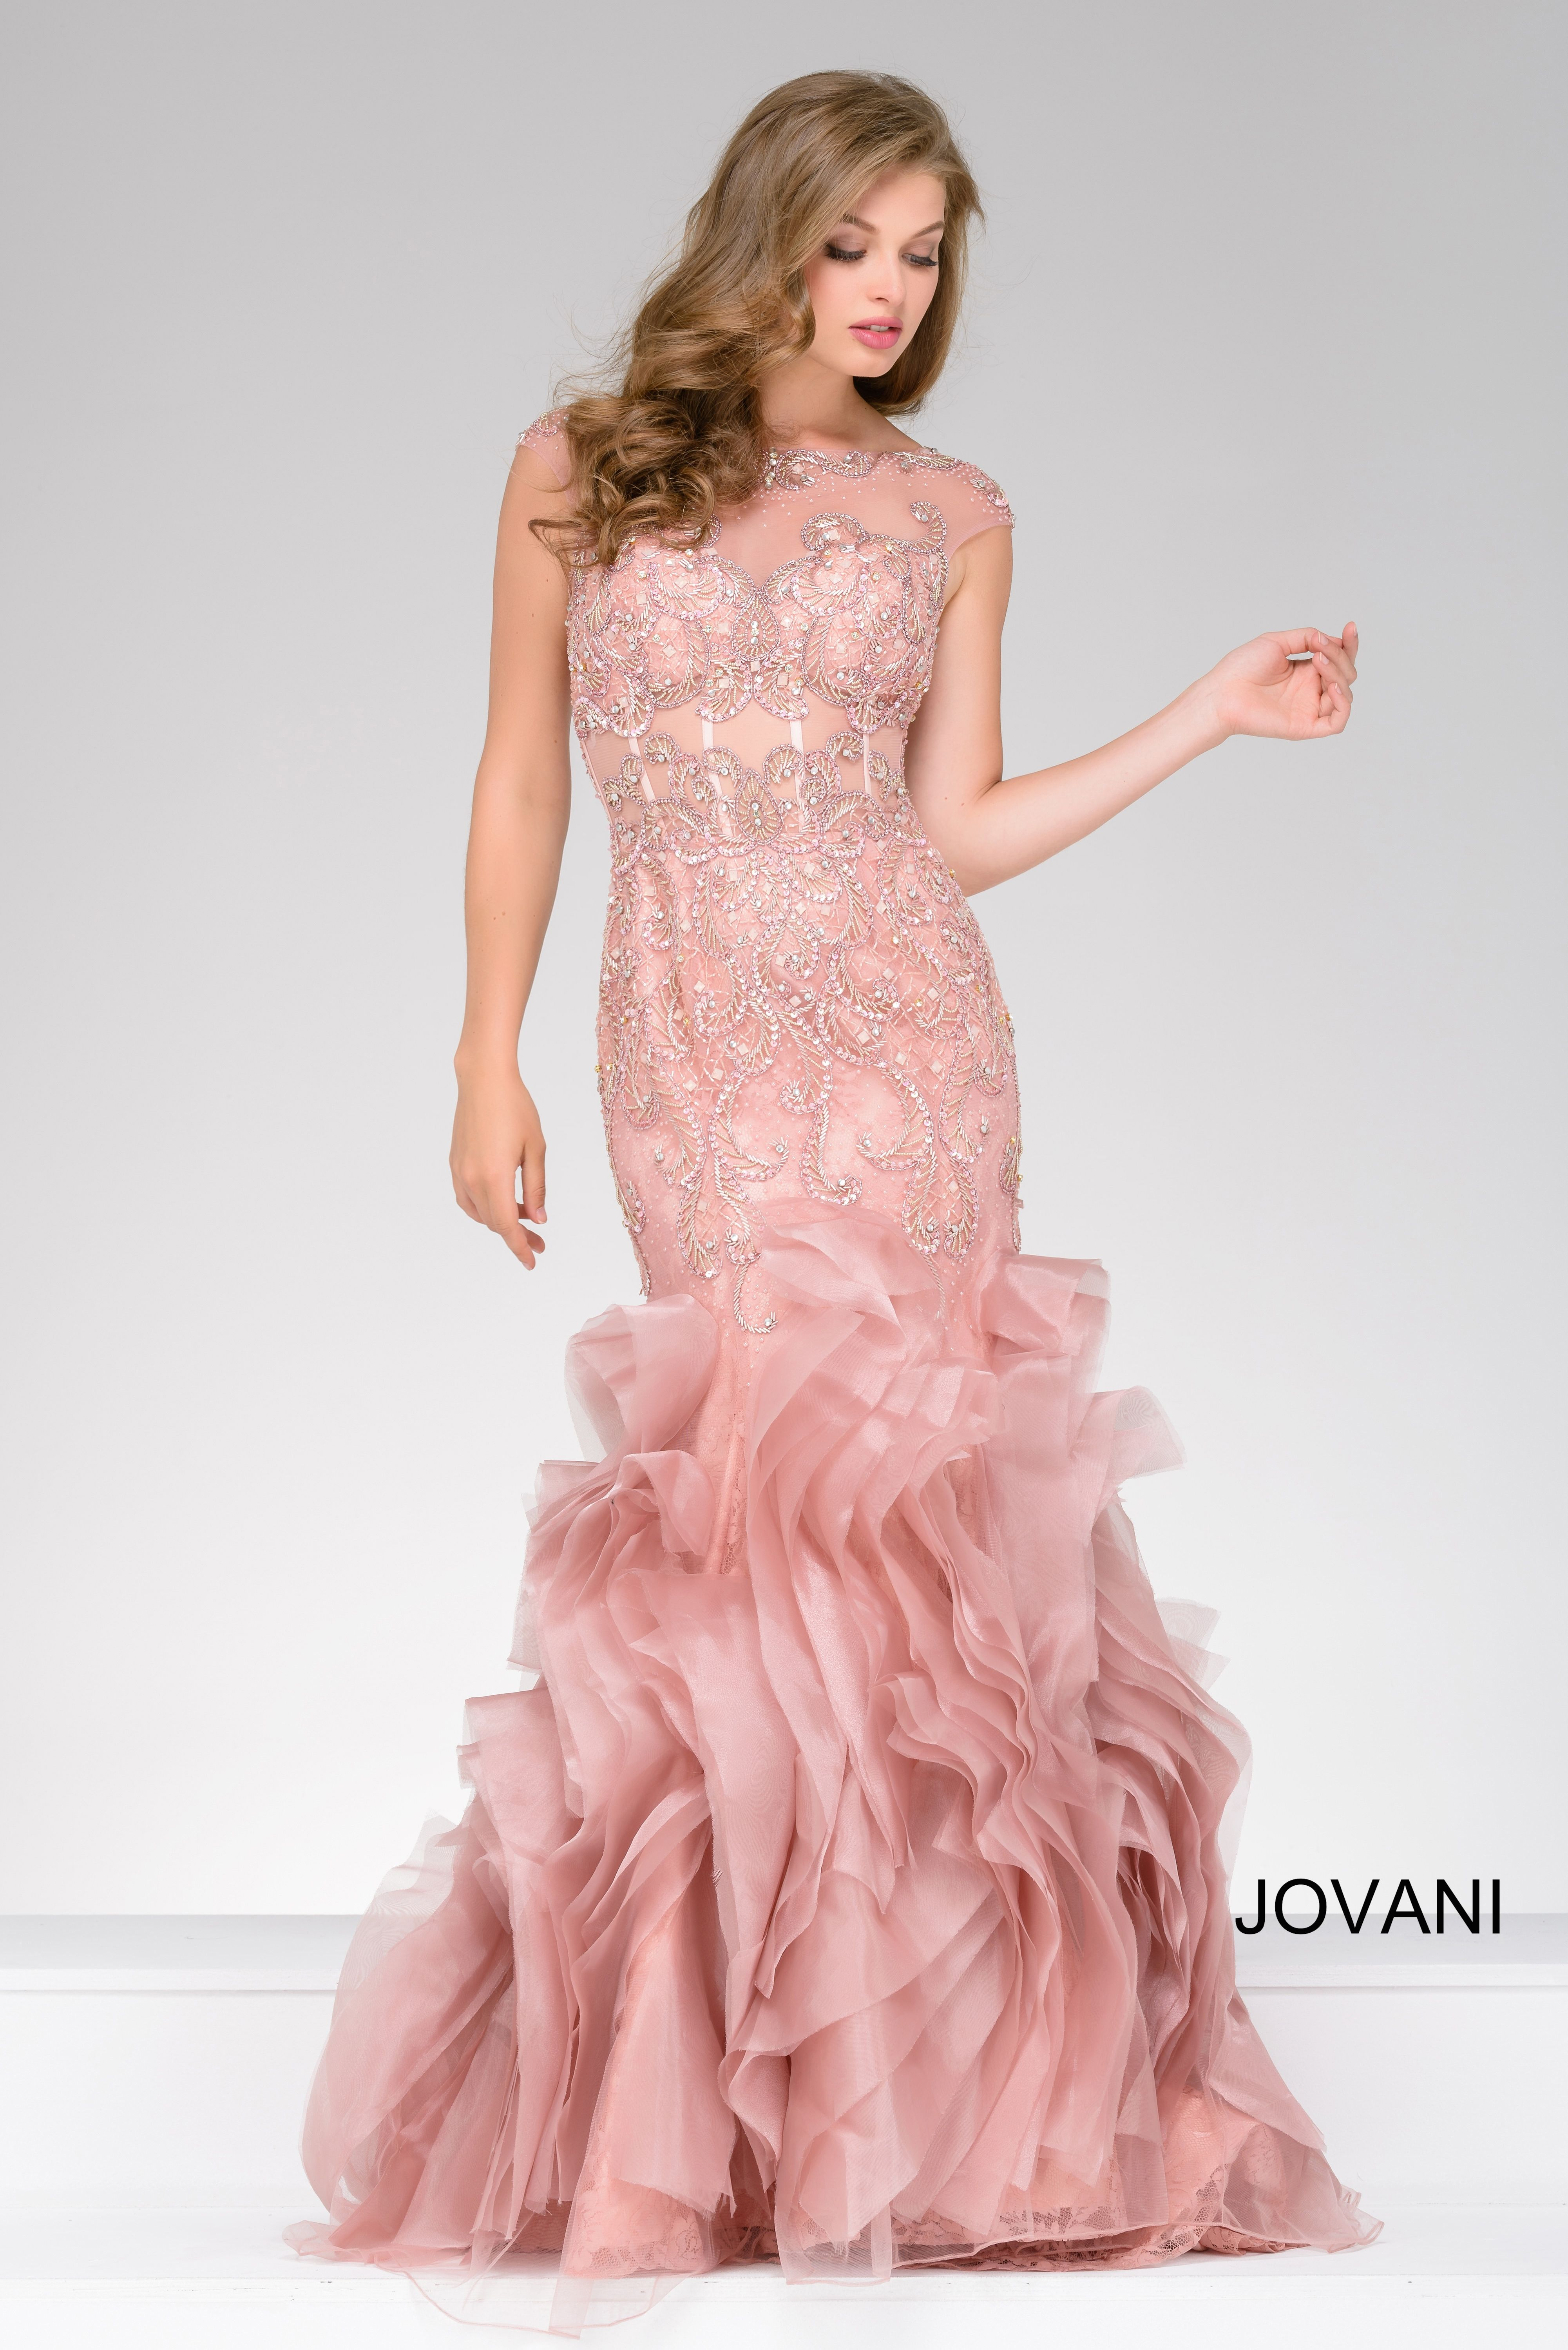 Rosey and ruffled in Jovani 40682 available at WhatchamaCallit ...